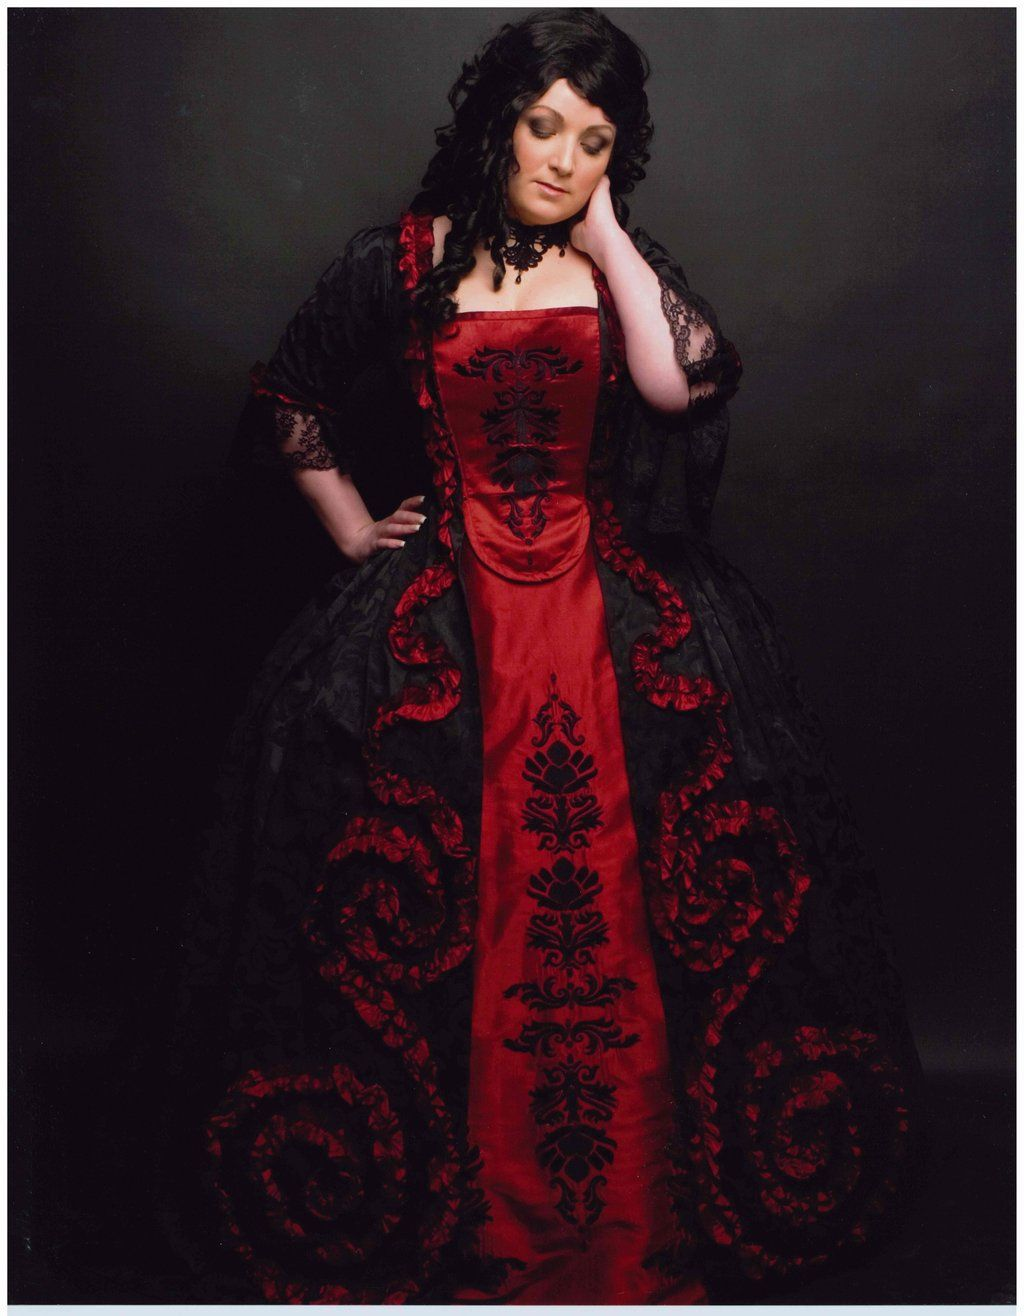 Masquerade ball gown by nightsneverland on deviantart costume